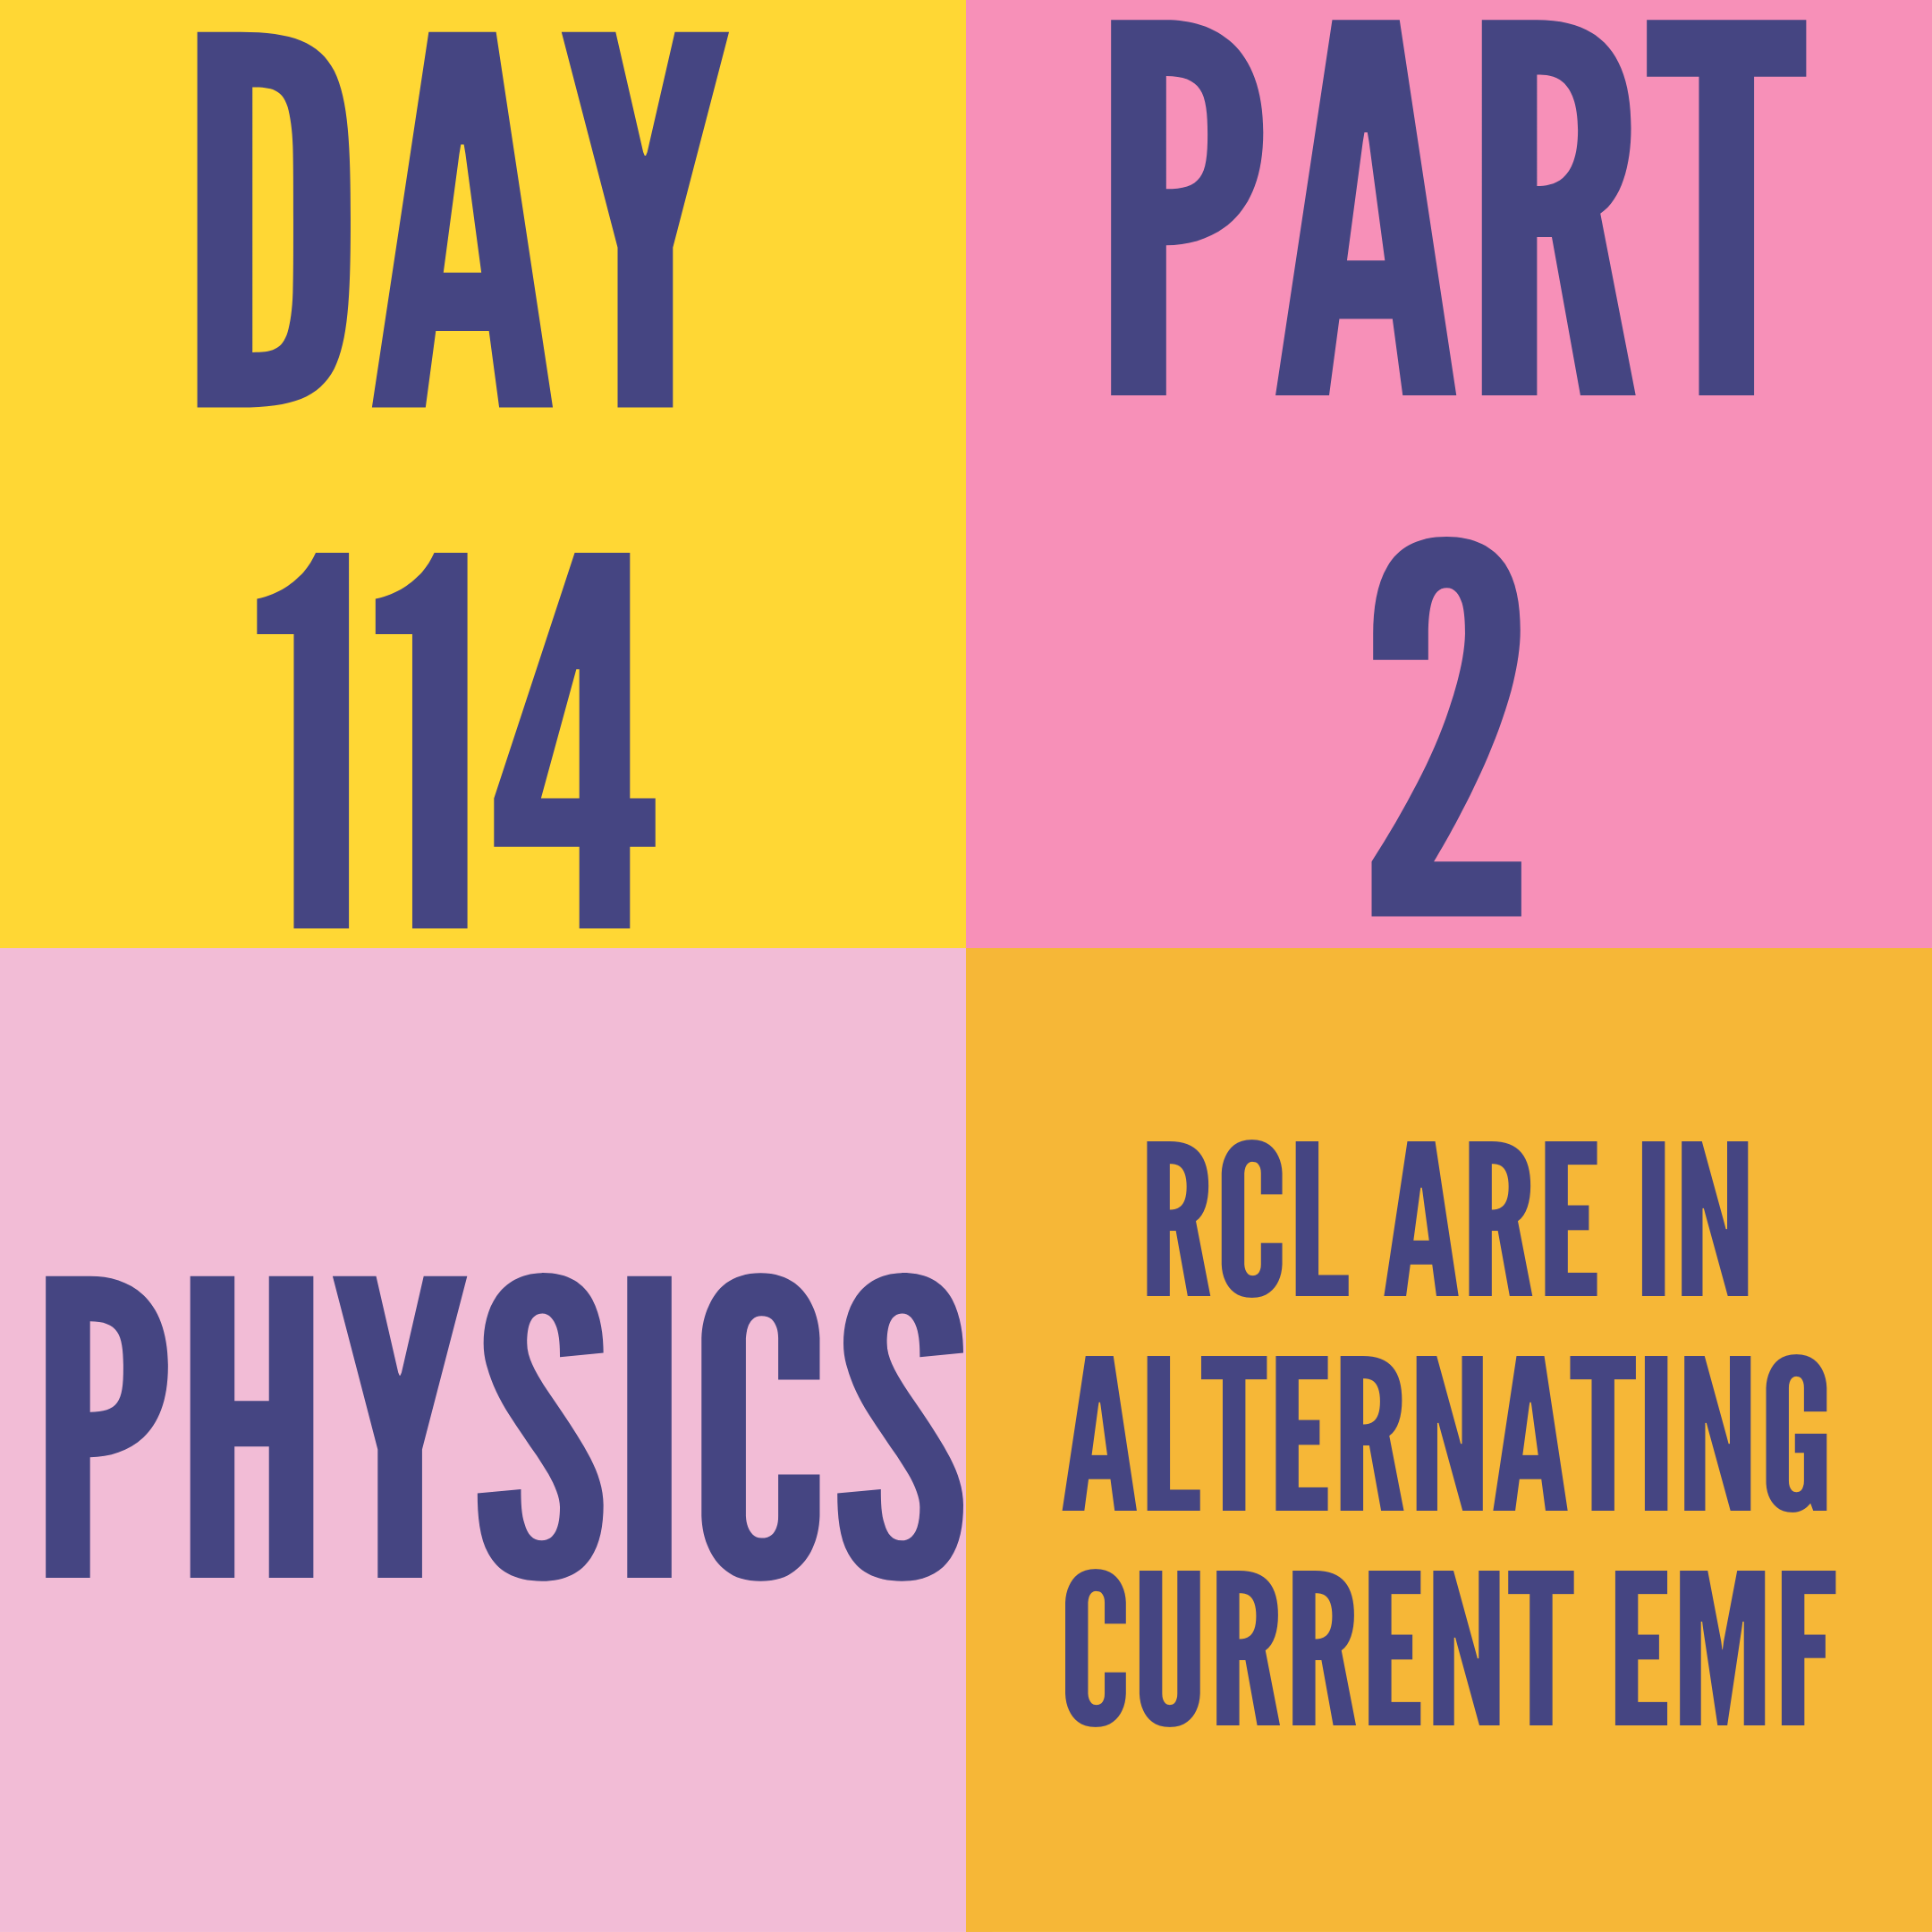 DAY-114 PART-2 RCL ARE IN ALTERNATING CURRENT EMF